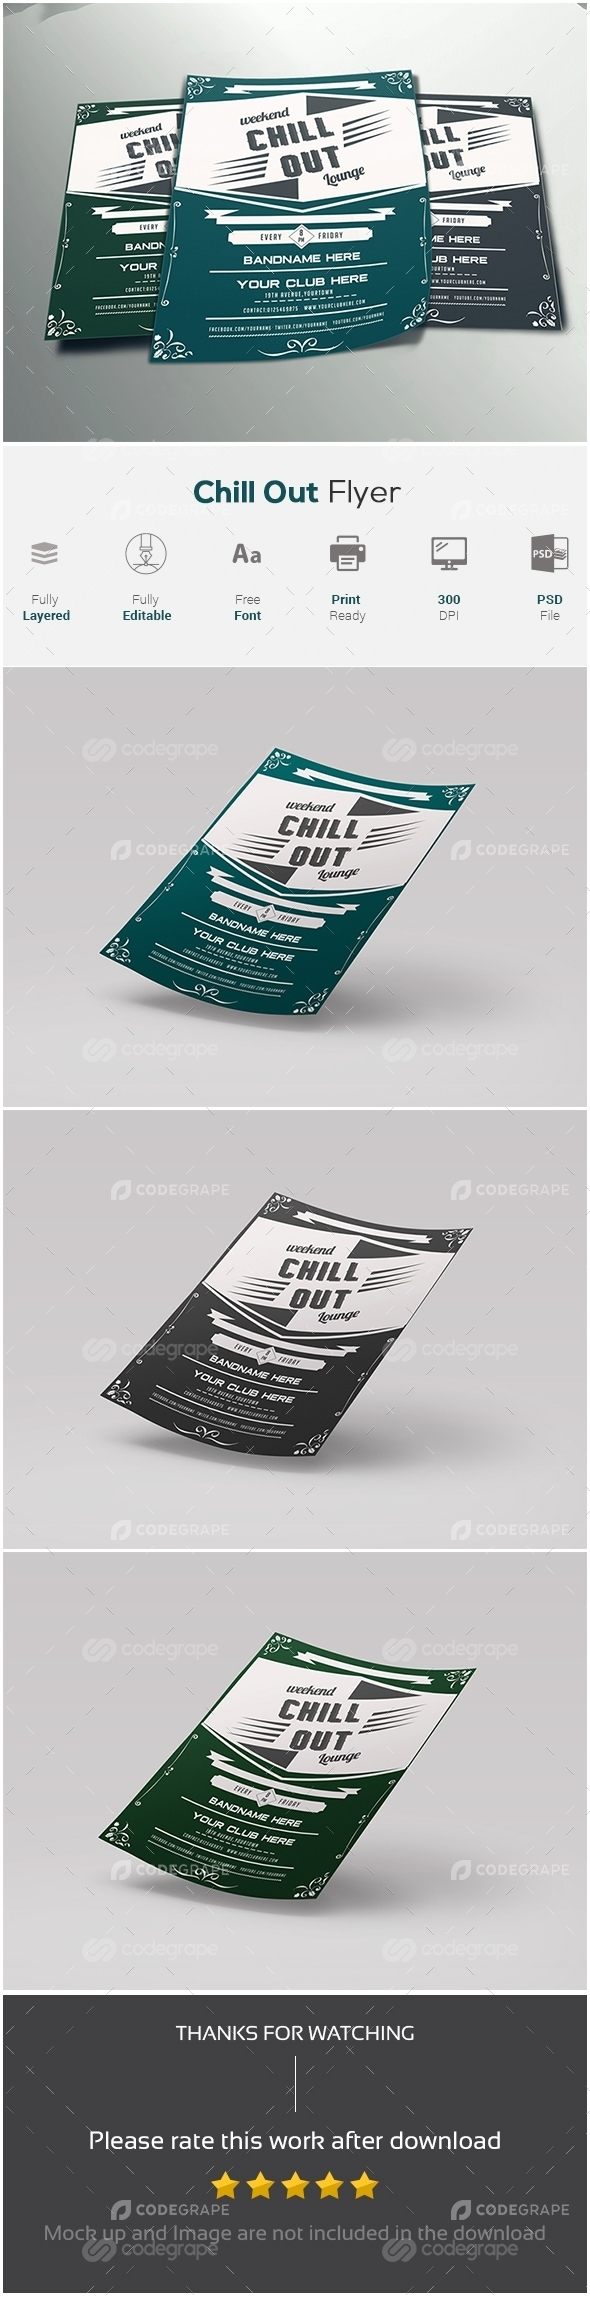 Chill out Flyer Template